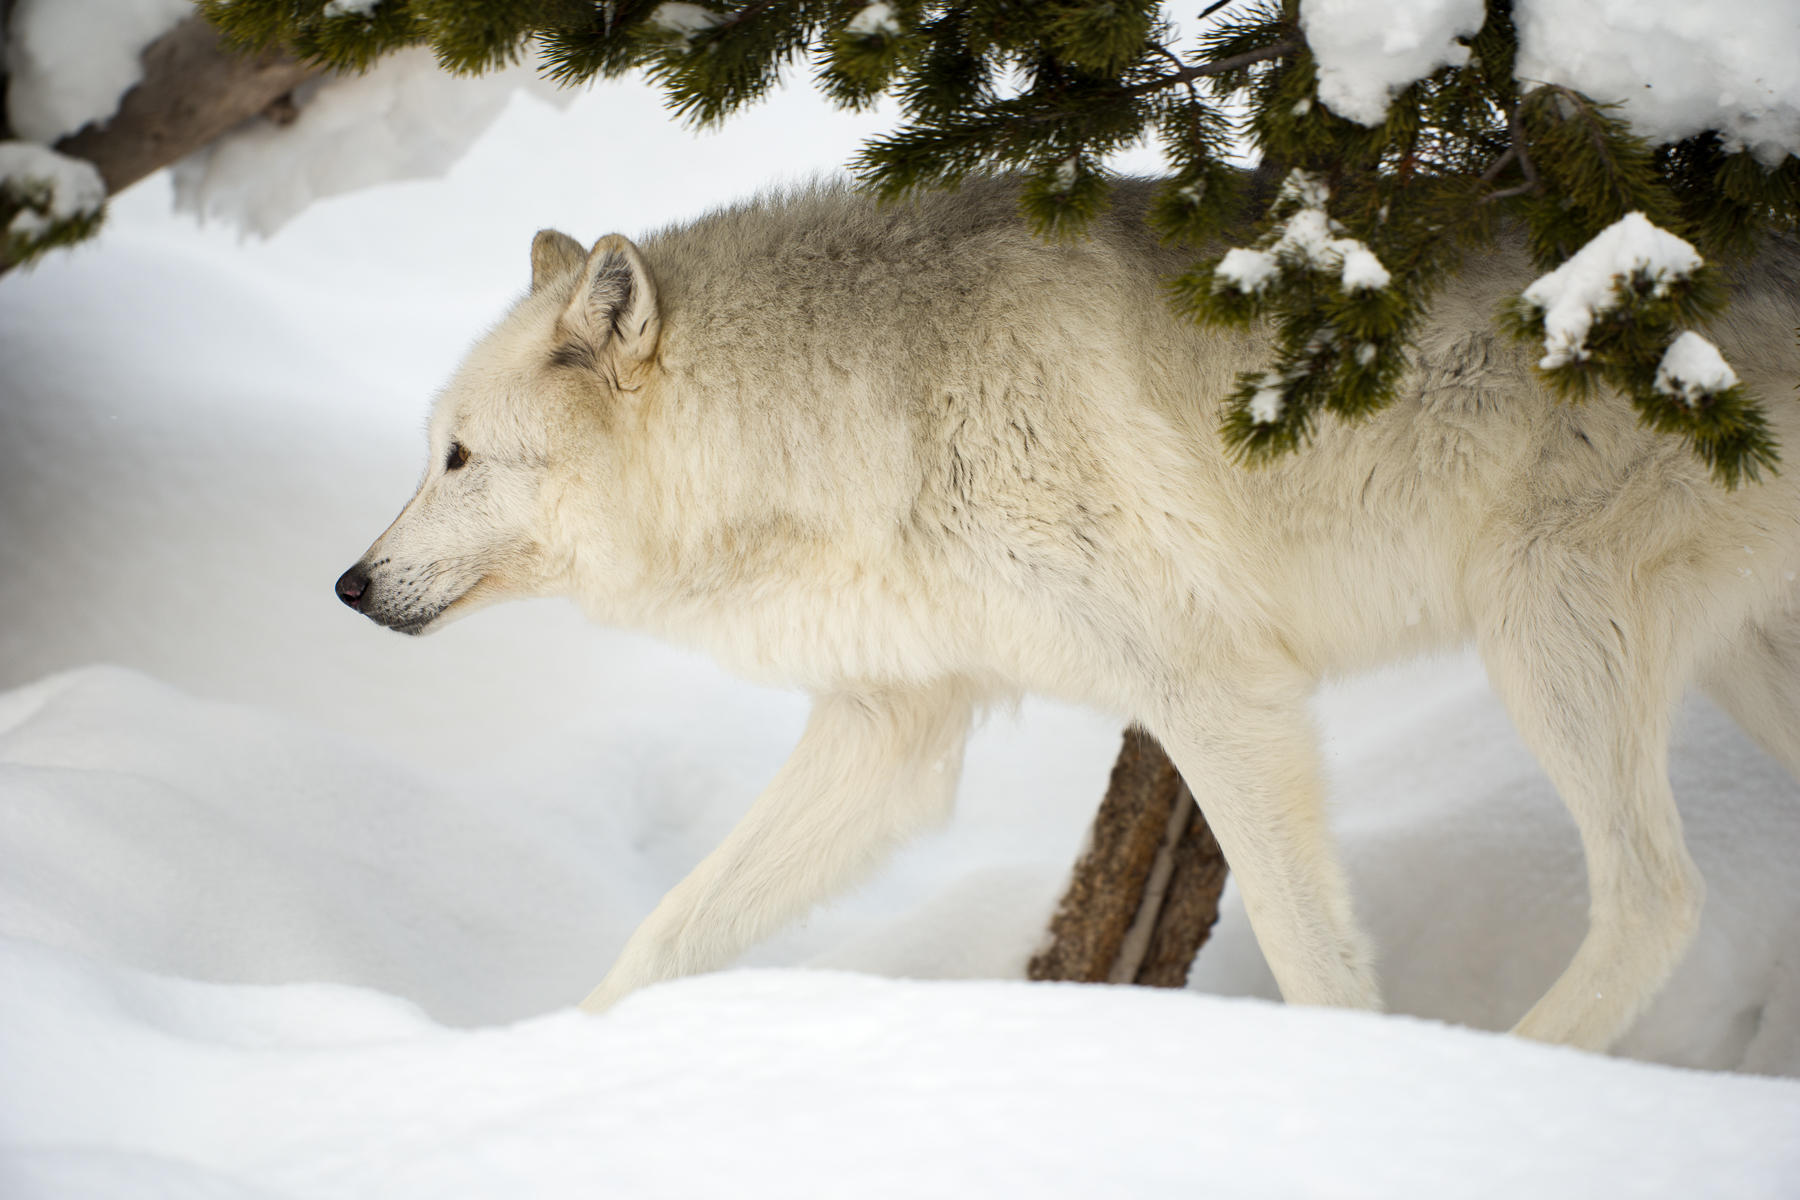 Gray wolf (Canis lupus), Grizzly and Wolf Discovery Center, Montana : wildlife : TIMOTHY FLOYD PHOTOGRAPHER, NATURE PHOTOGRAPHY, PHOTO ESSAYS, PHOTOJOURNALISM